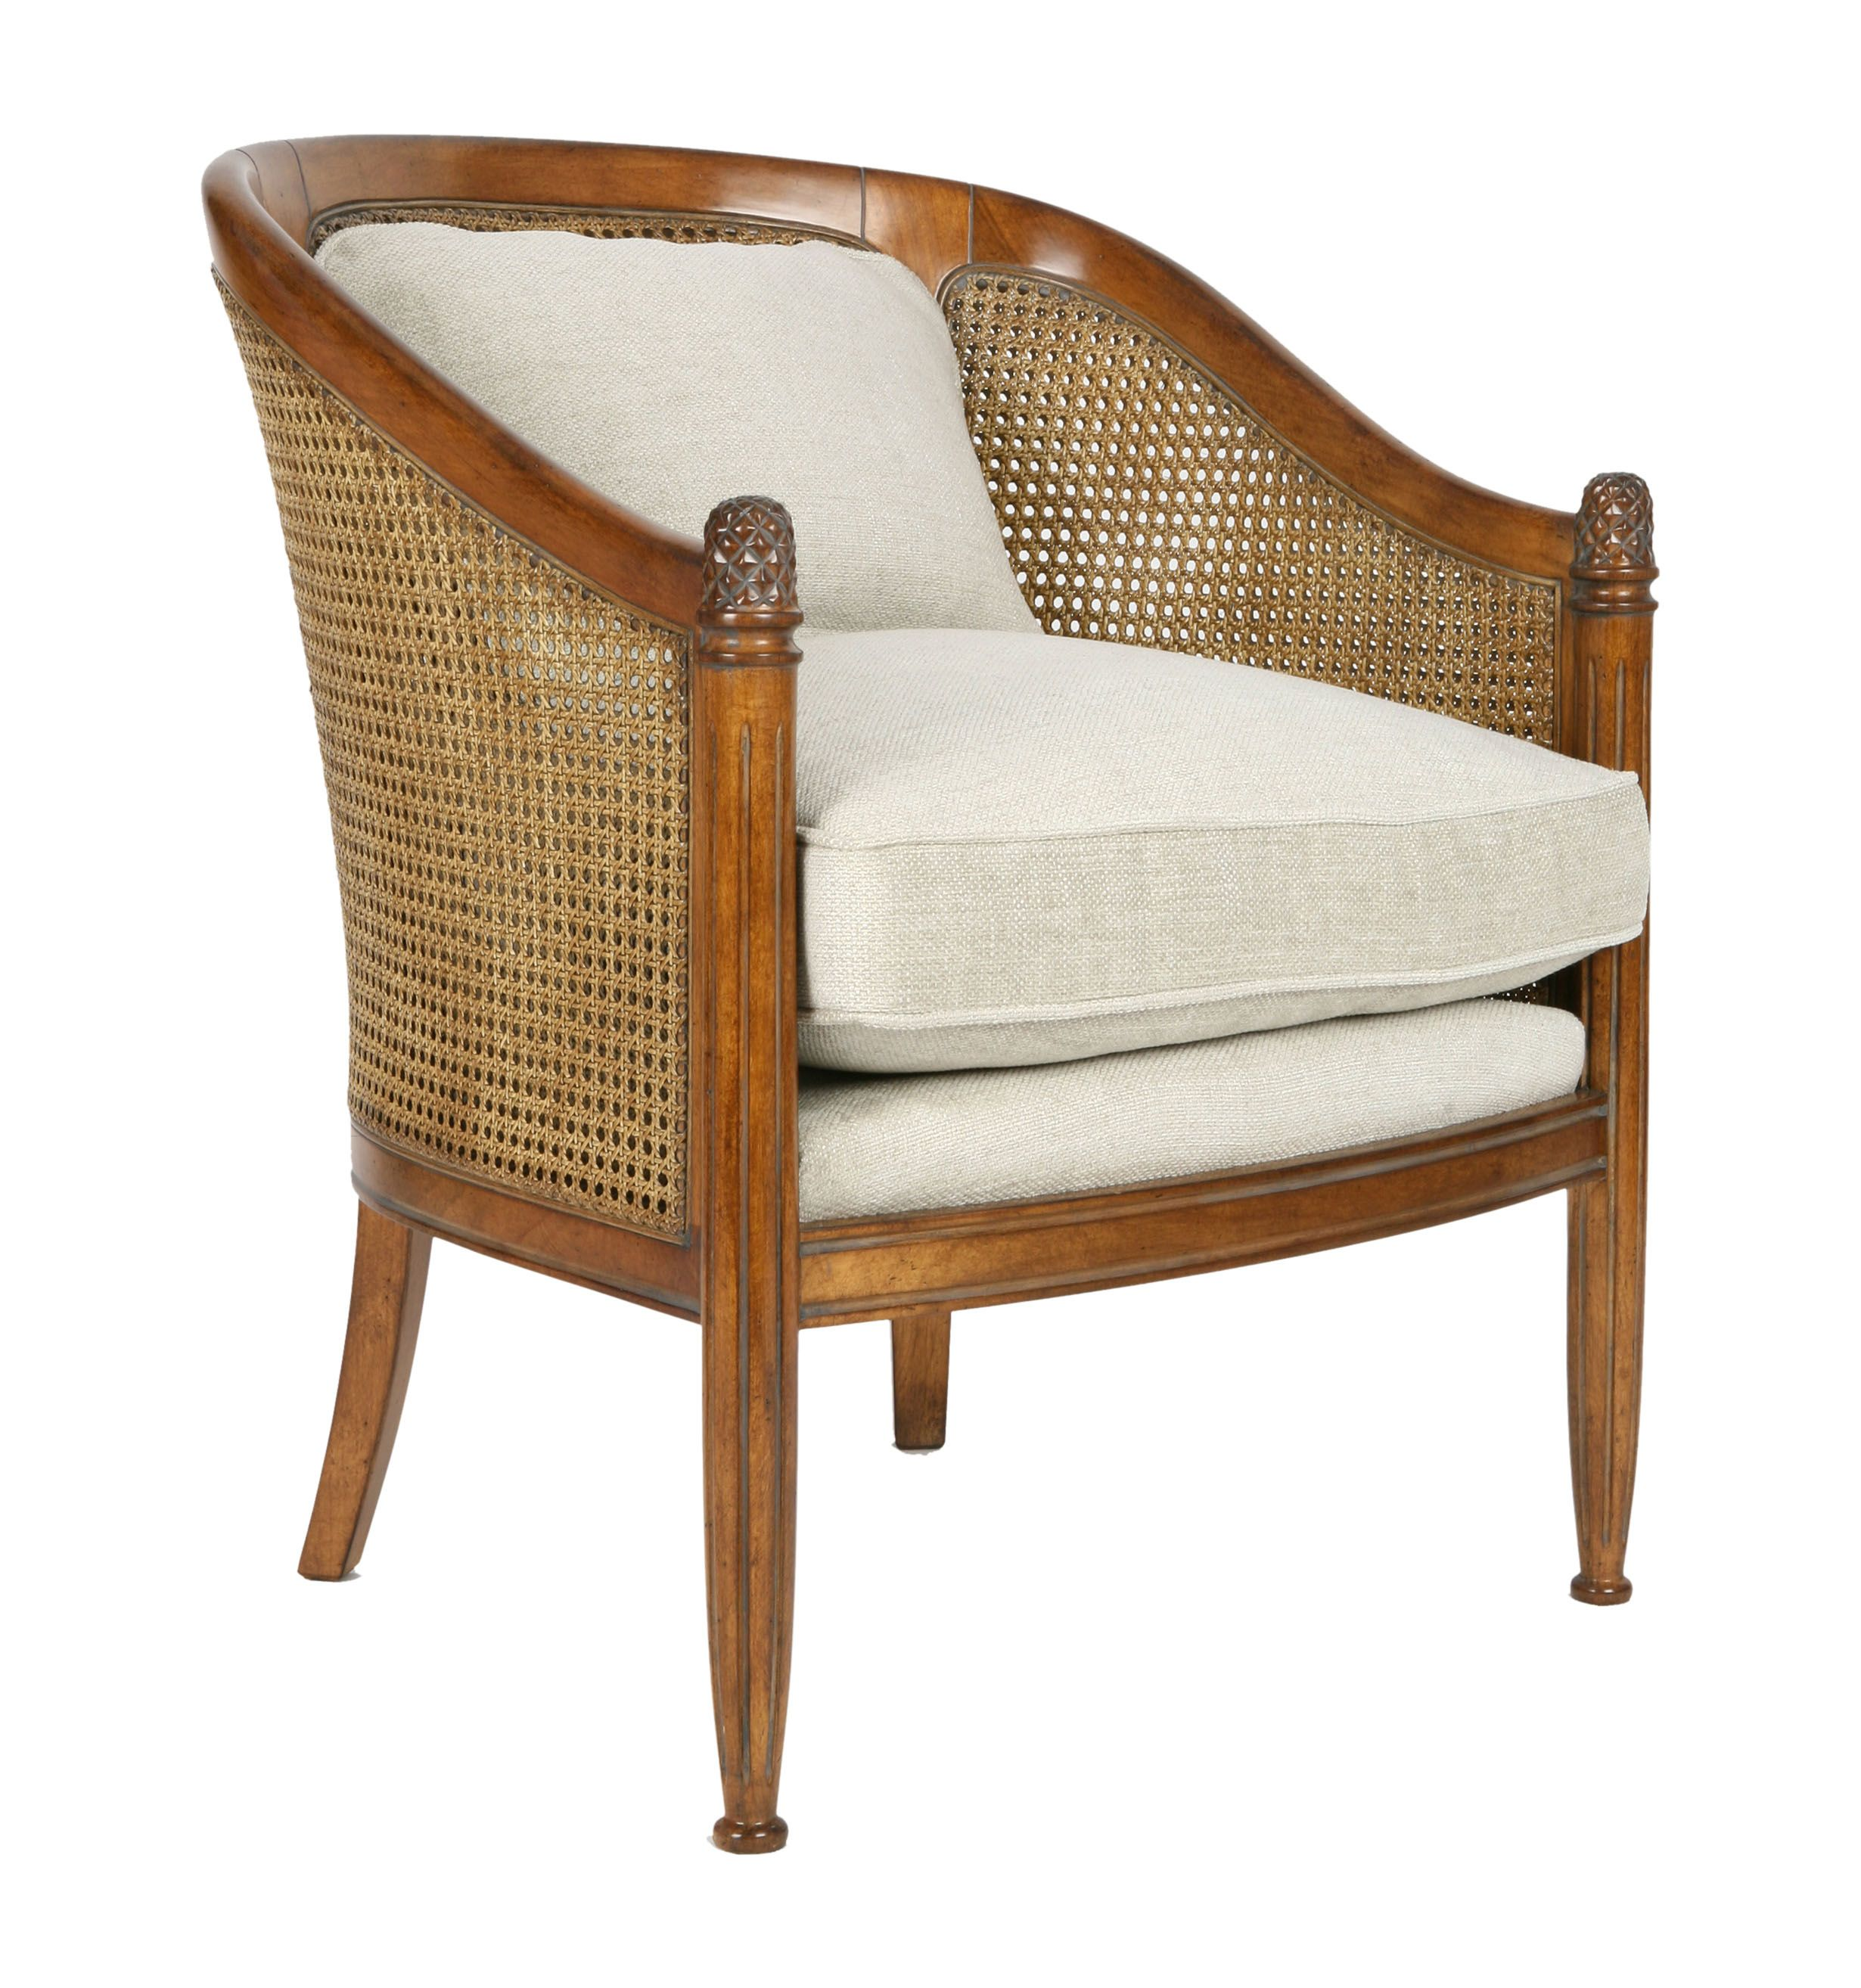 Bergère Tradition | Traditional armchairs, Wood furniture ...